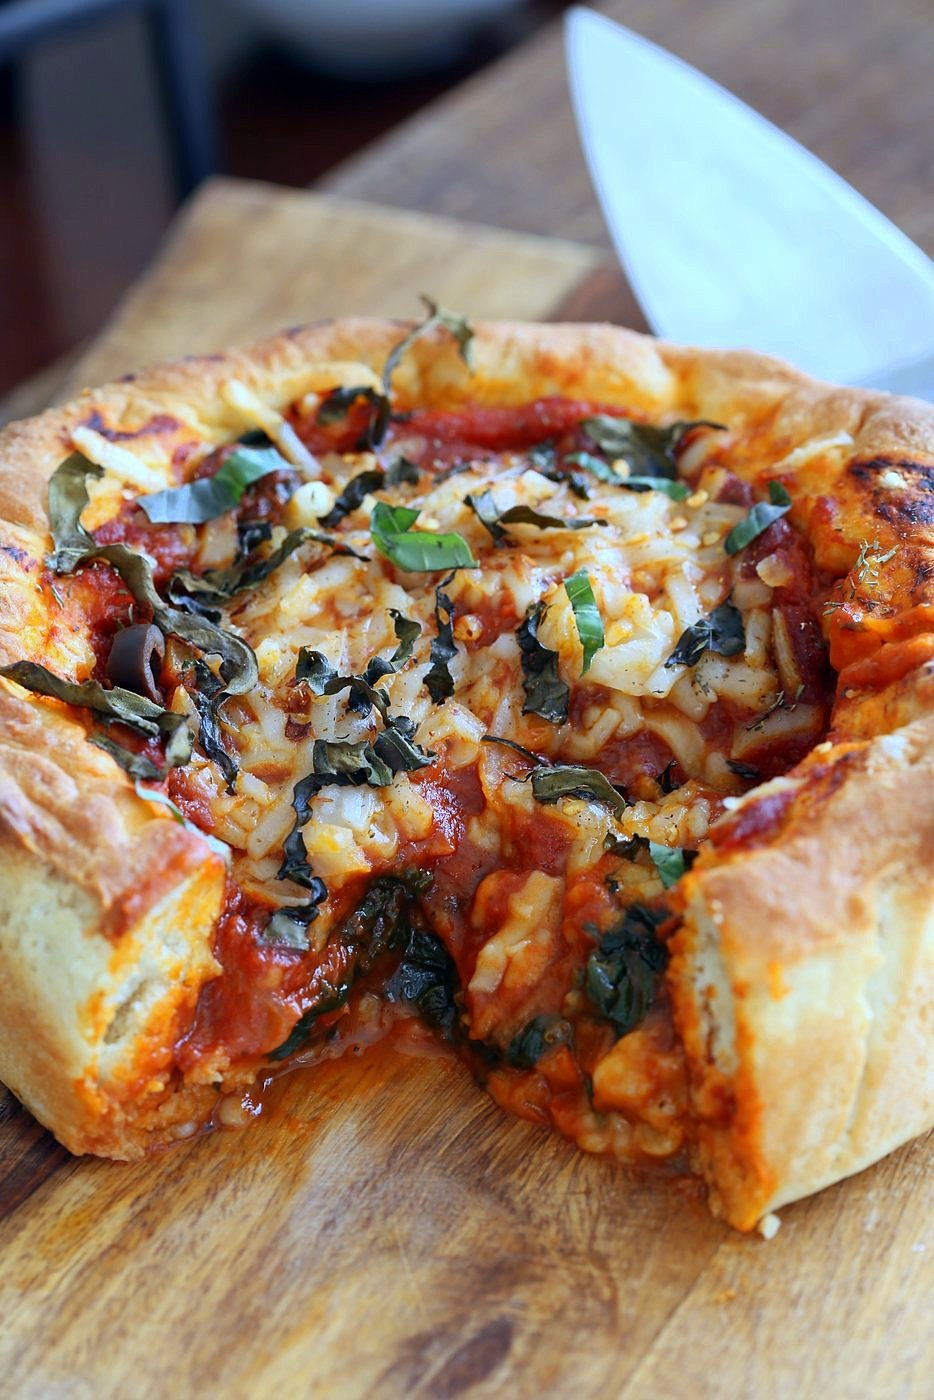 Vegan Deep Dish Pizza Recipe. Easy Deep Dish Pizza with from scratch crust, red pepper, spinach, vegan mozzarella and basil. Vegan Pizza Recipe. | VeganRicha.com